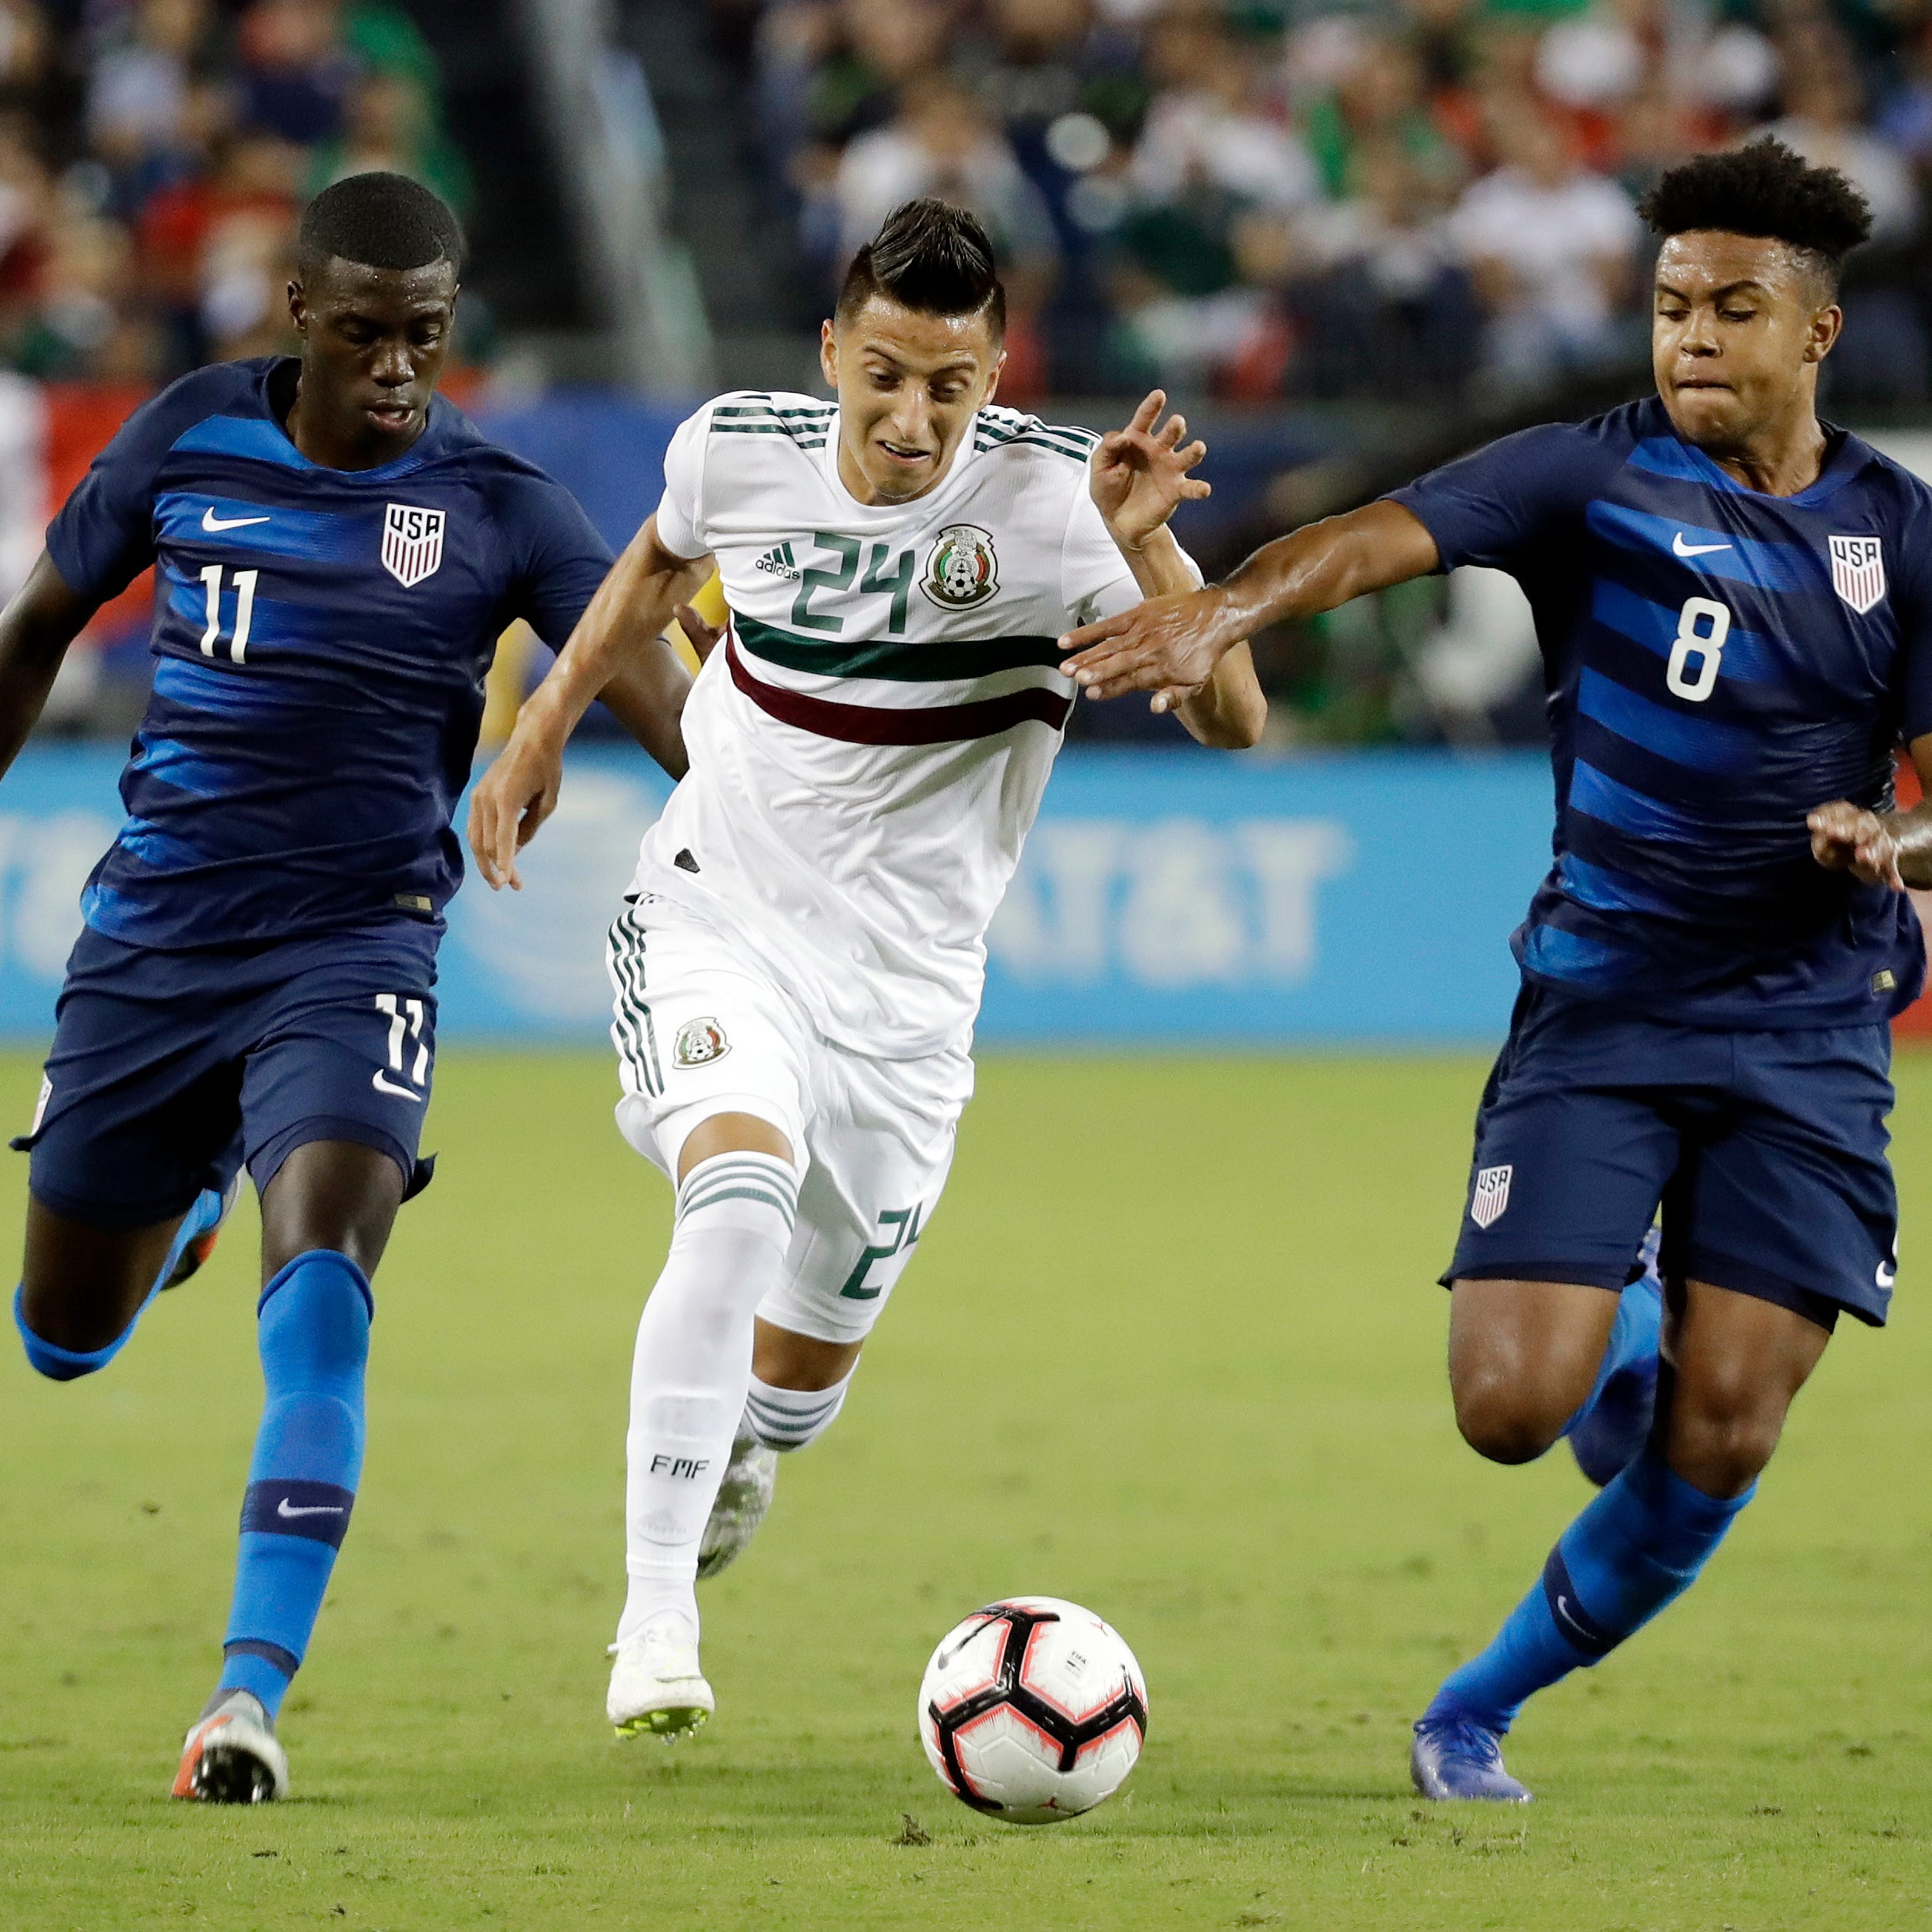 Adams' goal pushes U.S. past Mexico in feisty match